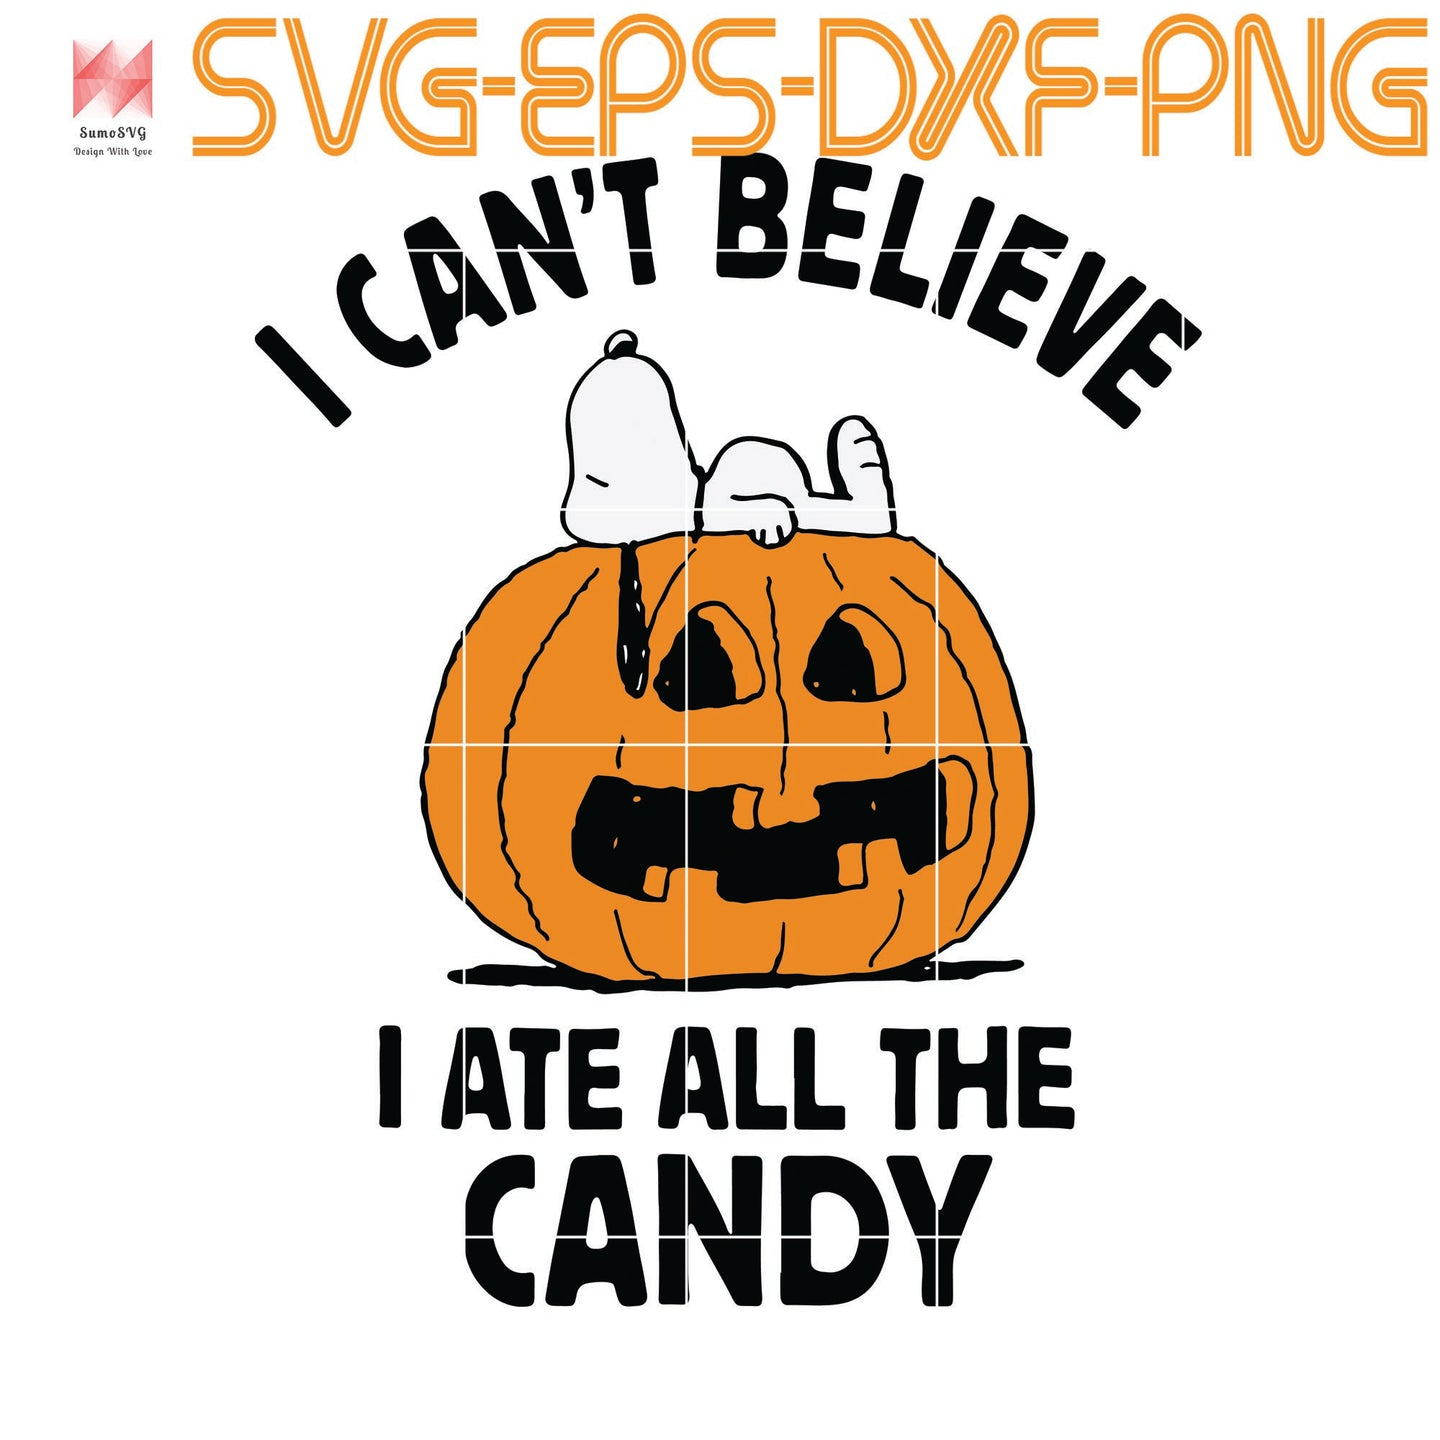 Peanuts Halloween Snoopy All The Candy, quotes, svg file for Cricut, Cameo, svg, png, eps, dxf, digital download